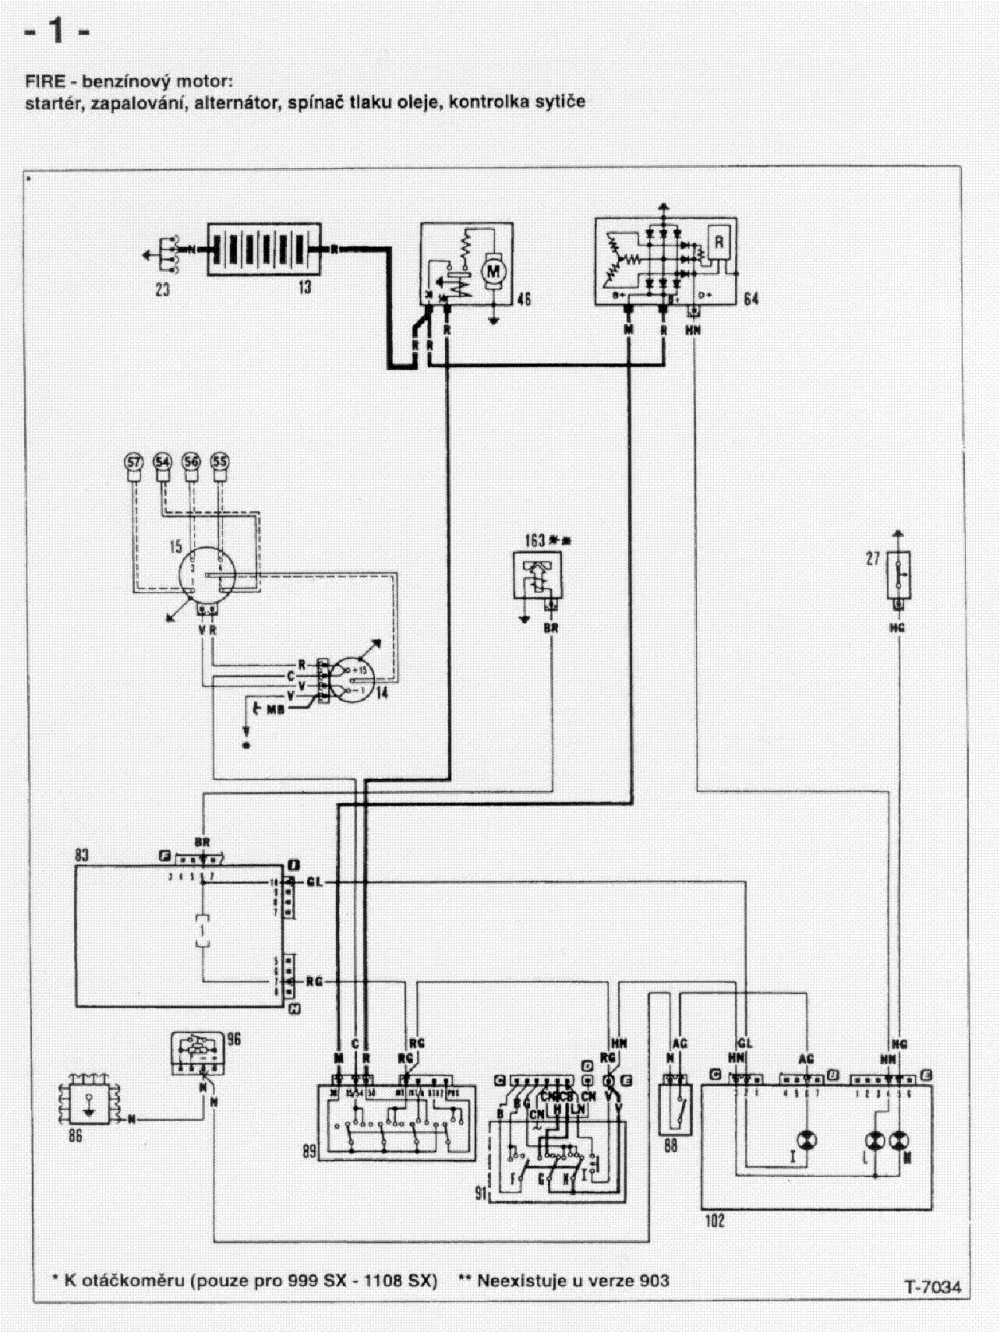 medium resolution of fiat uno wiring diagram service manual download schematics eeprom rh elektrotanya com fiat punto electrical wiring